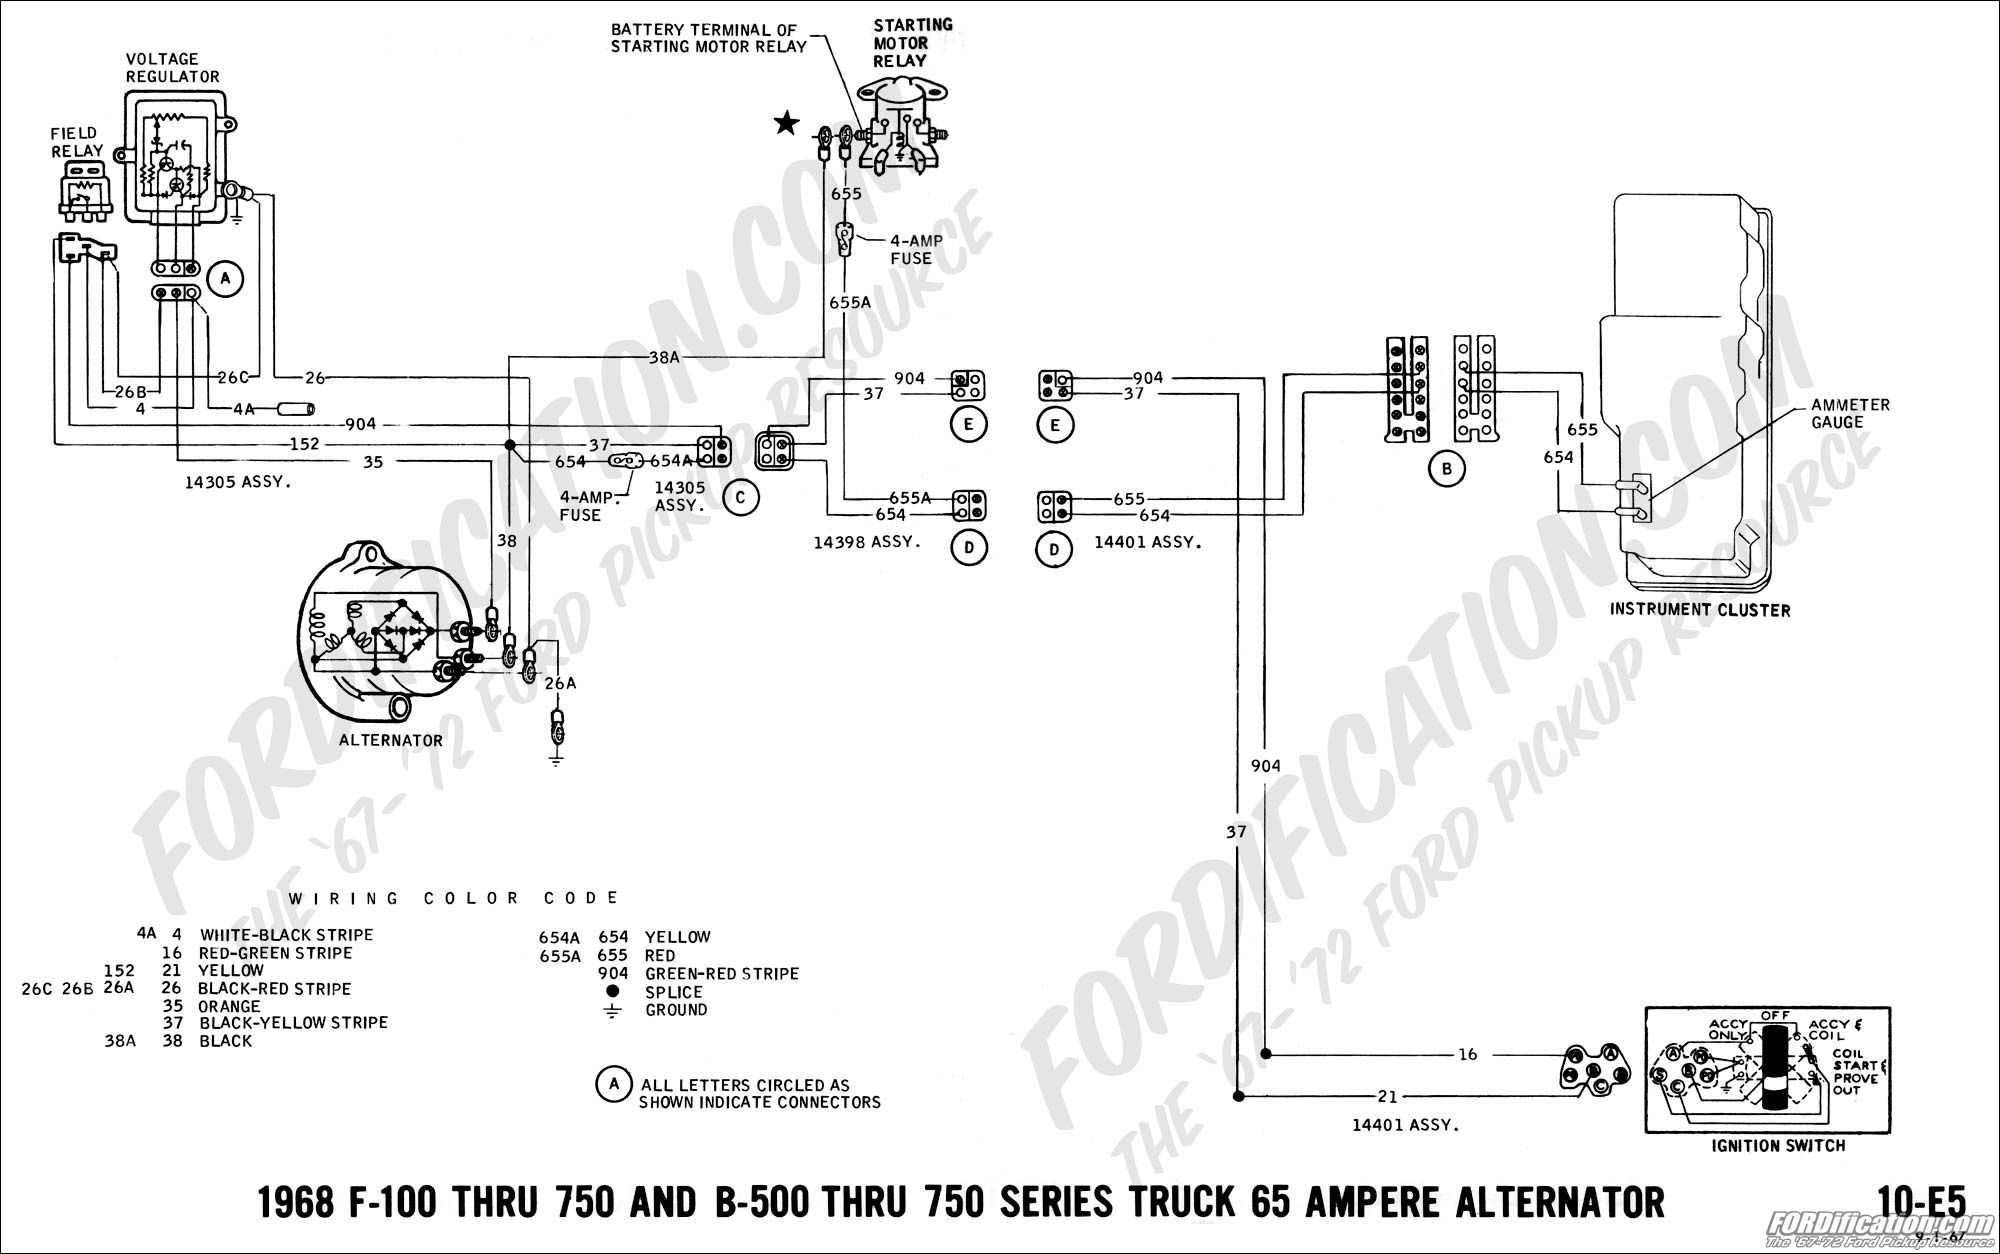 Ford F350 Alternator Wiring Archive Of Automotive Diagram 1991 F250 1970 Mustang Detailed Diagrams Rh Standrewsthorntonheath Co Uk 2004